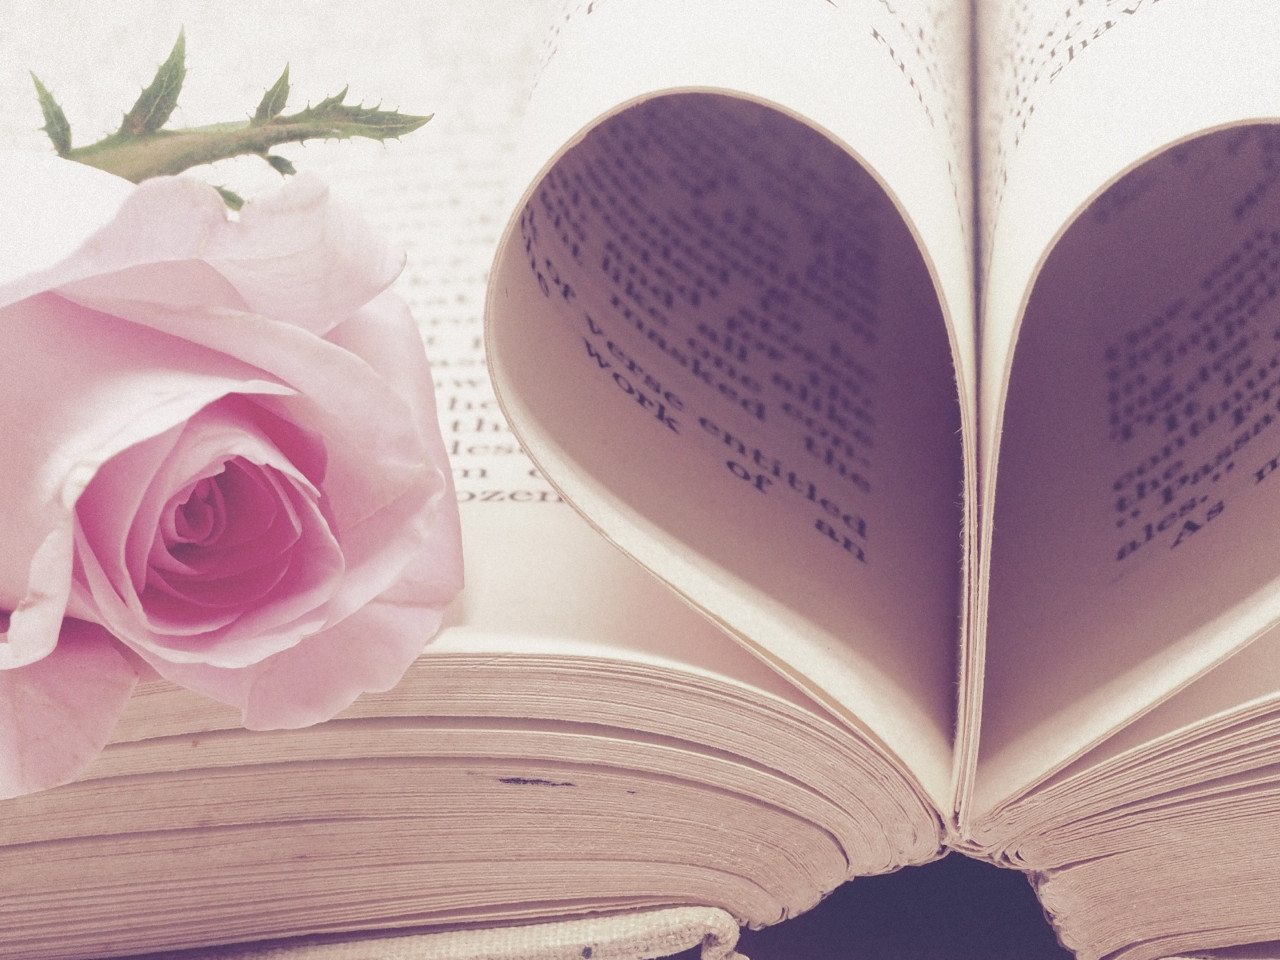 Rose flower and love book wallpaper 1280x960